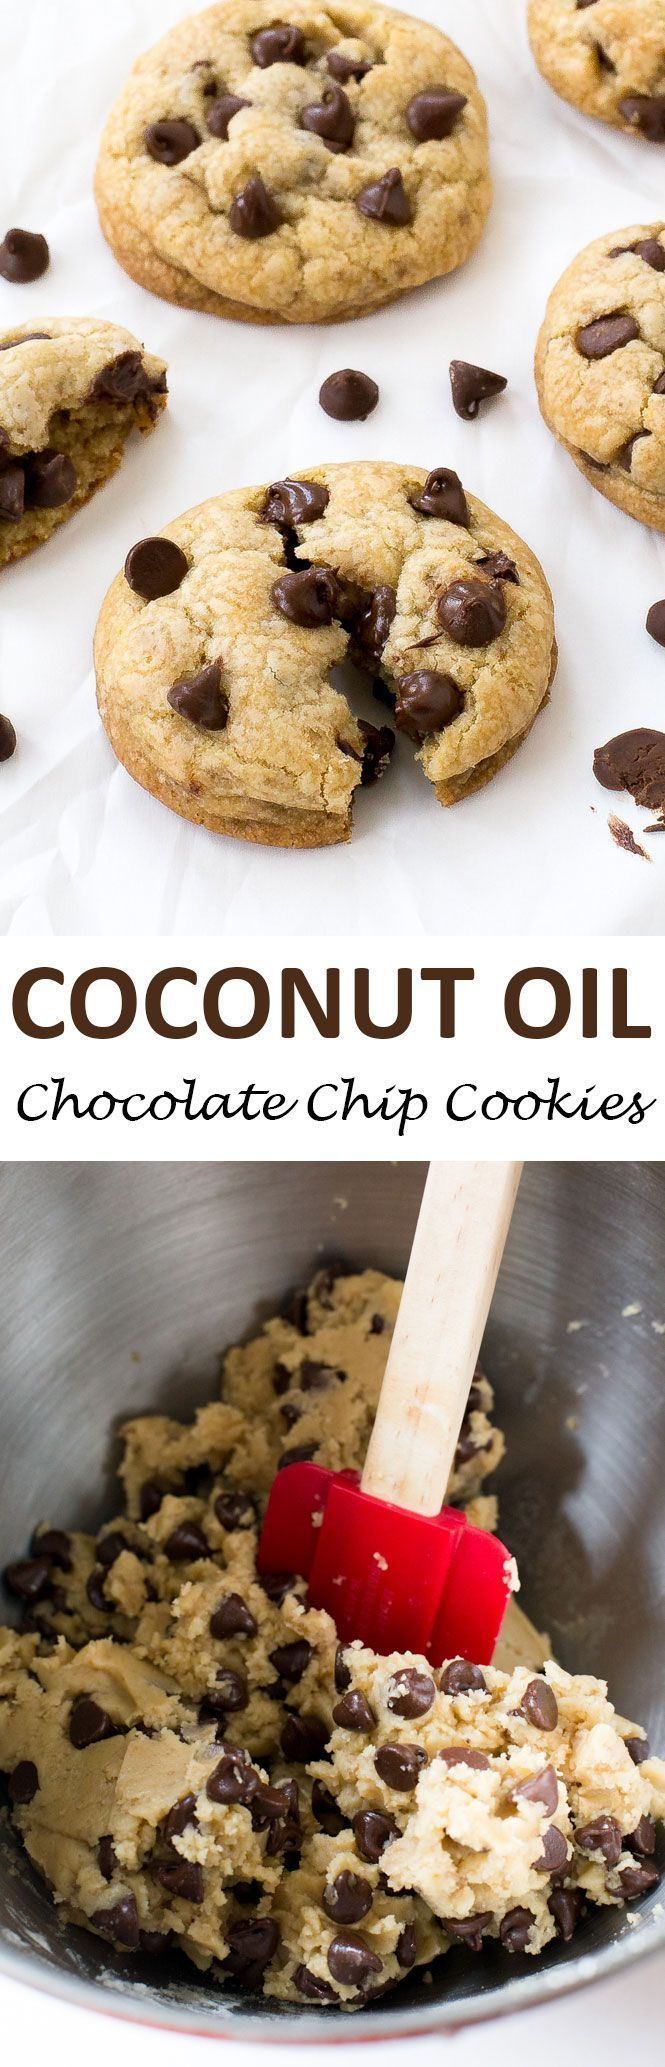 Coconut Oil Chocolate Chip Cookies made with coconut oil instead of butter. They…